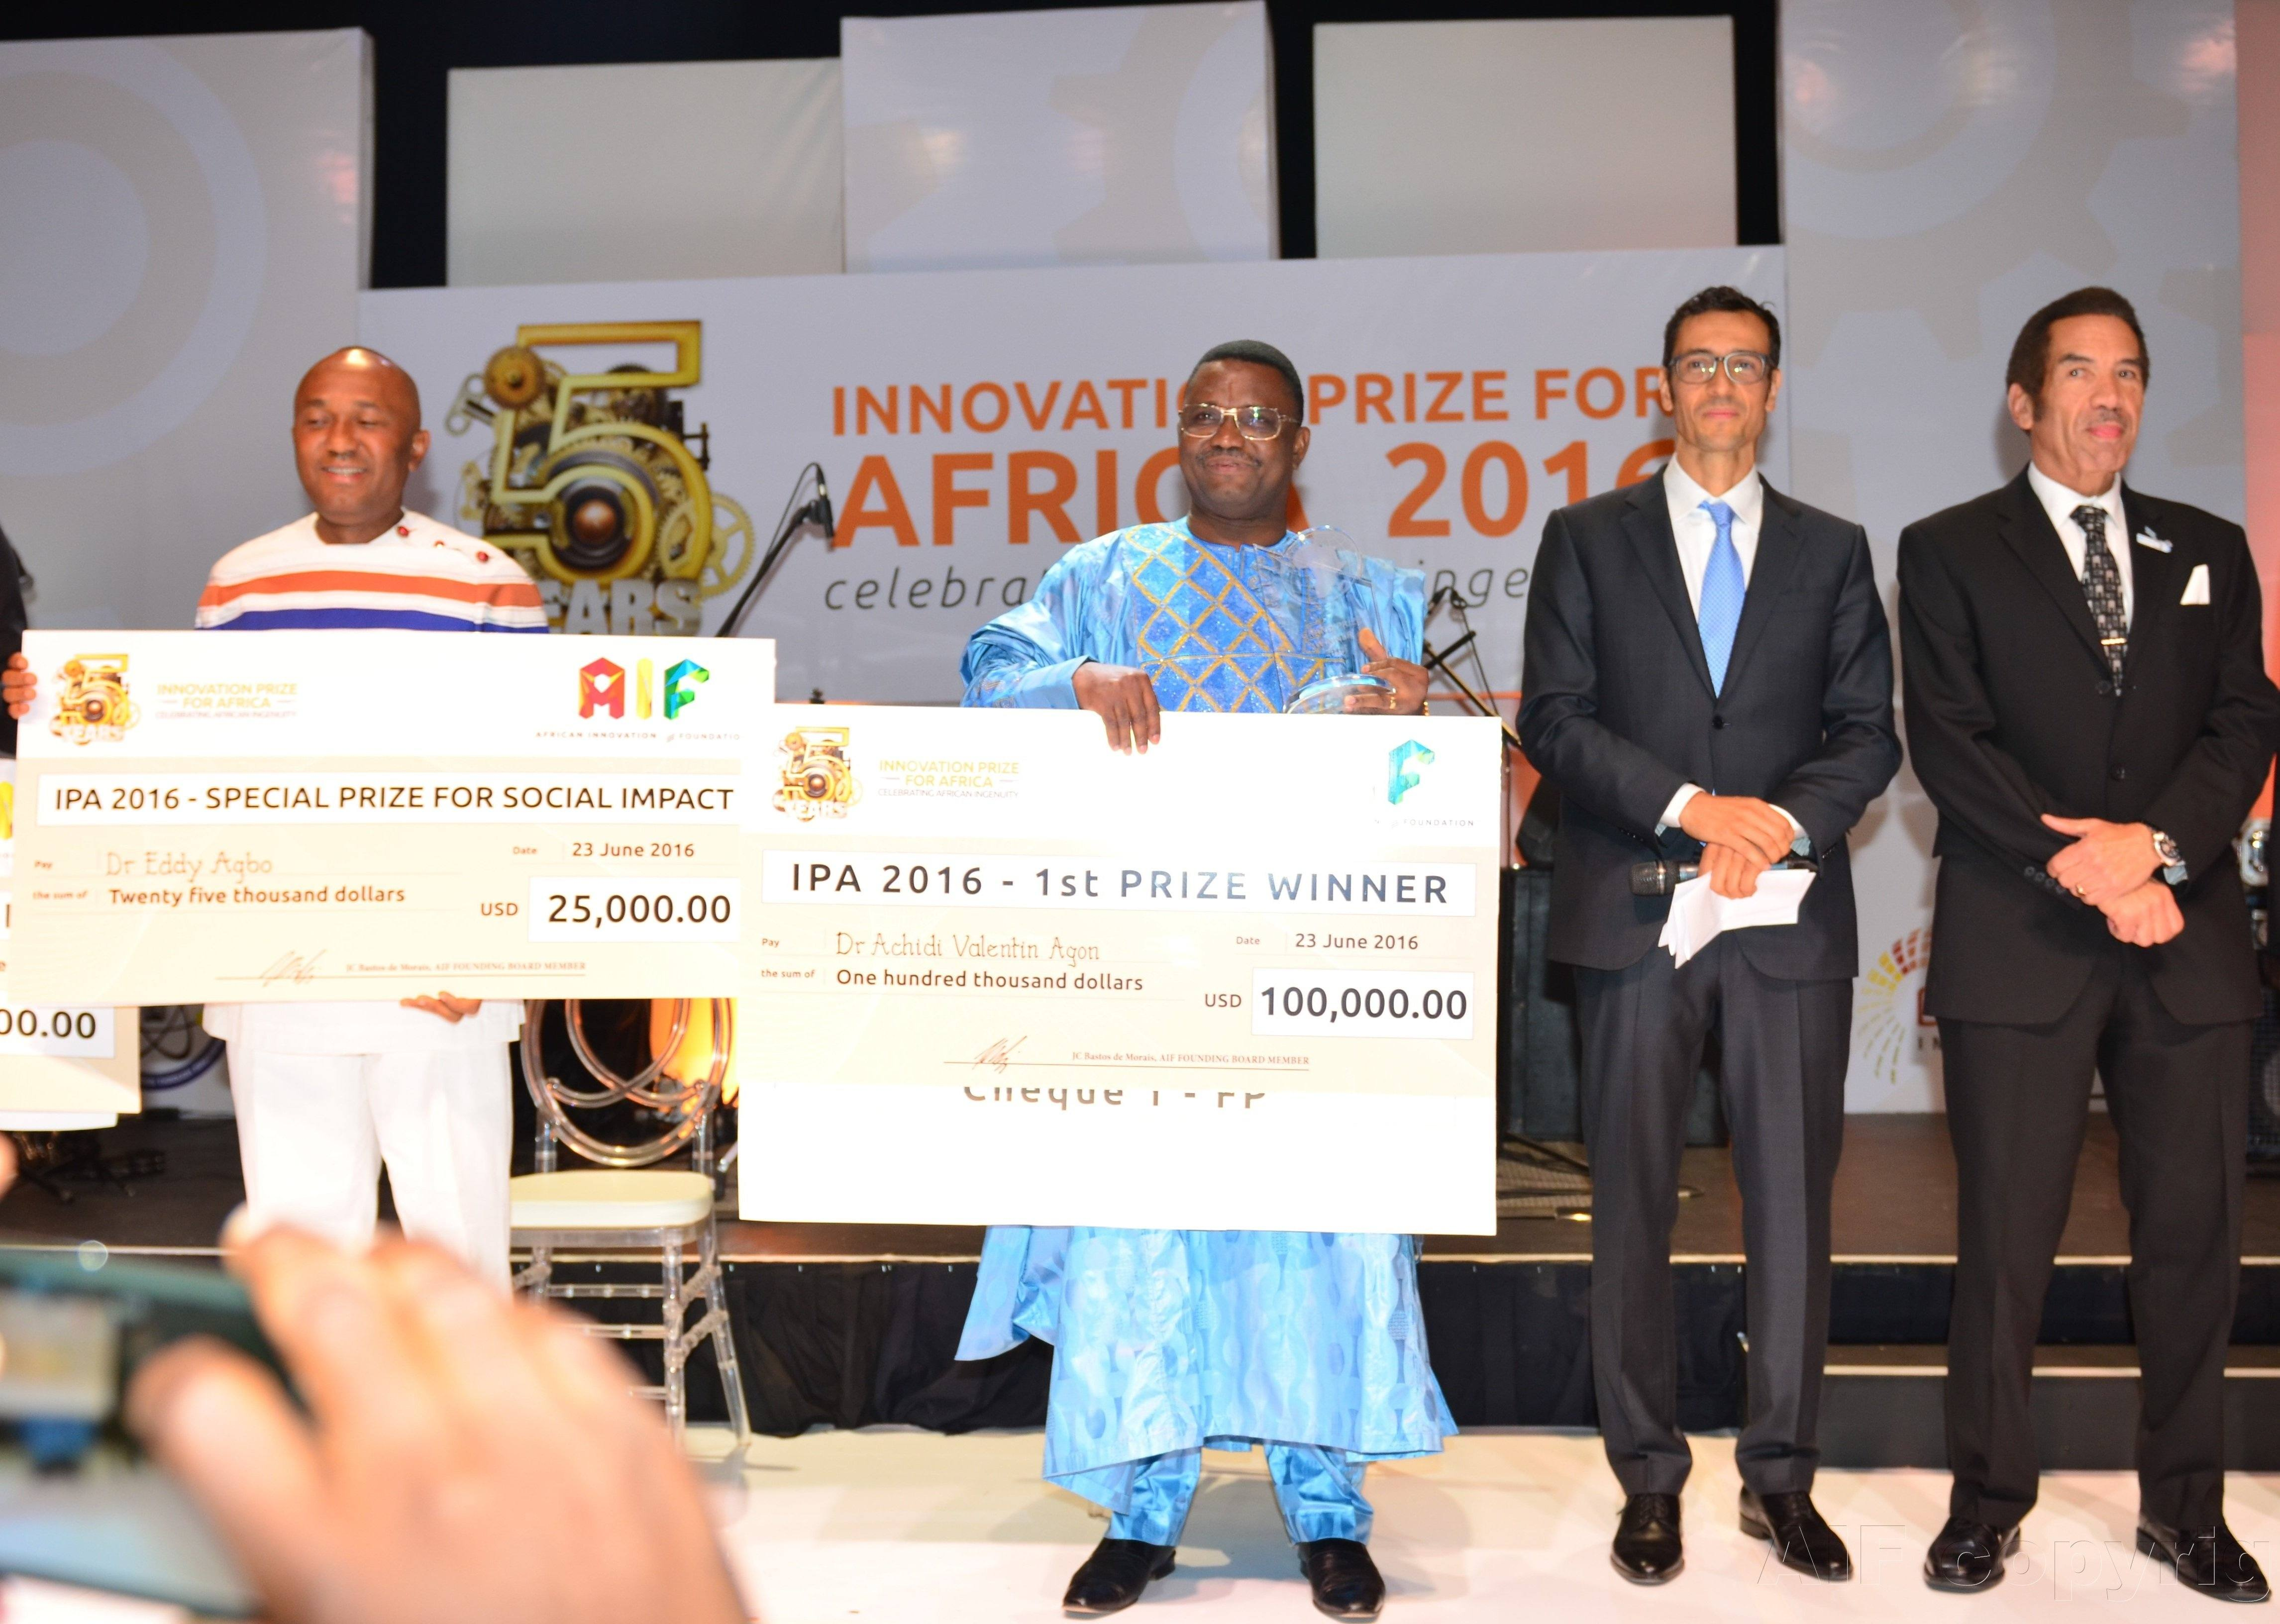 Innovation Prize for Africa 2016 winners Botswana